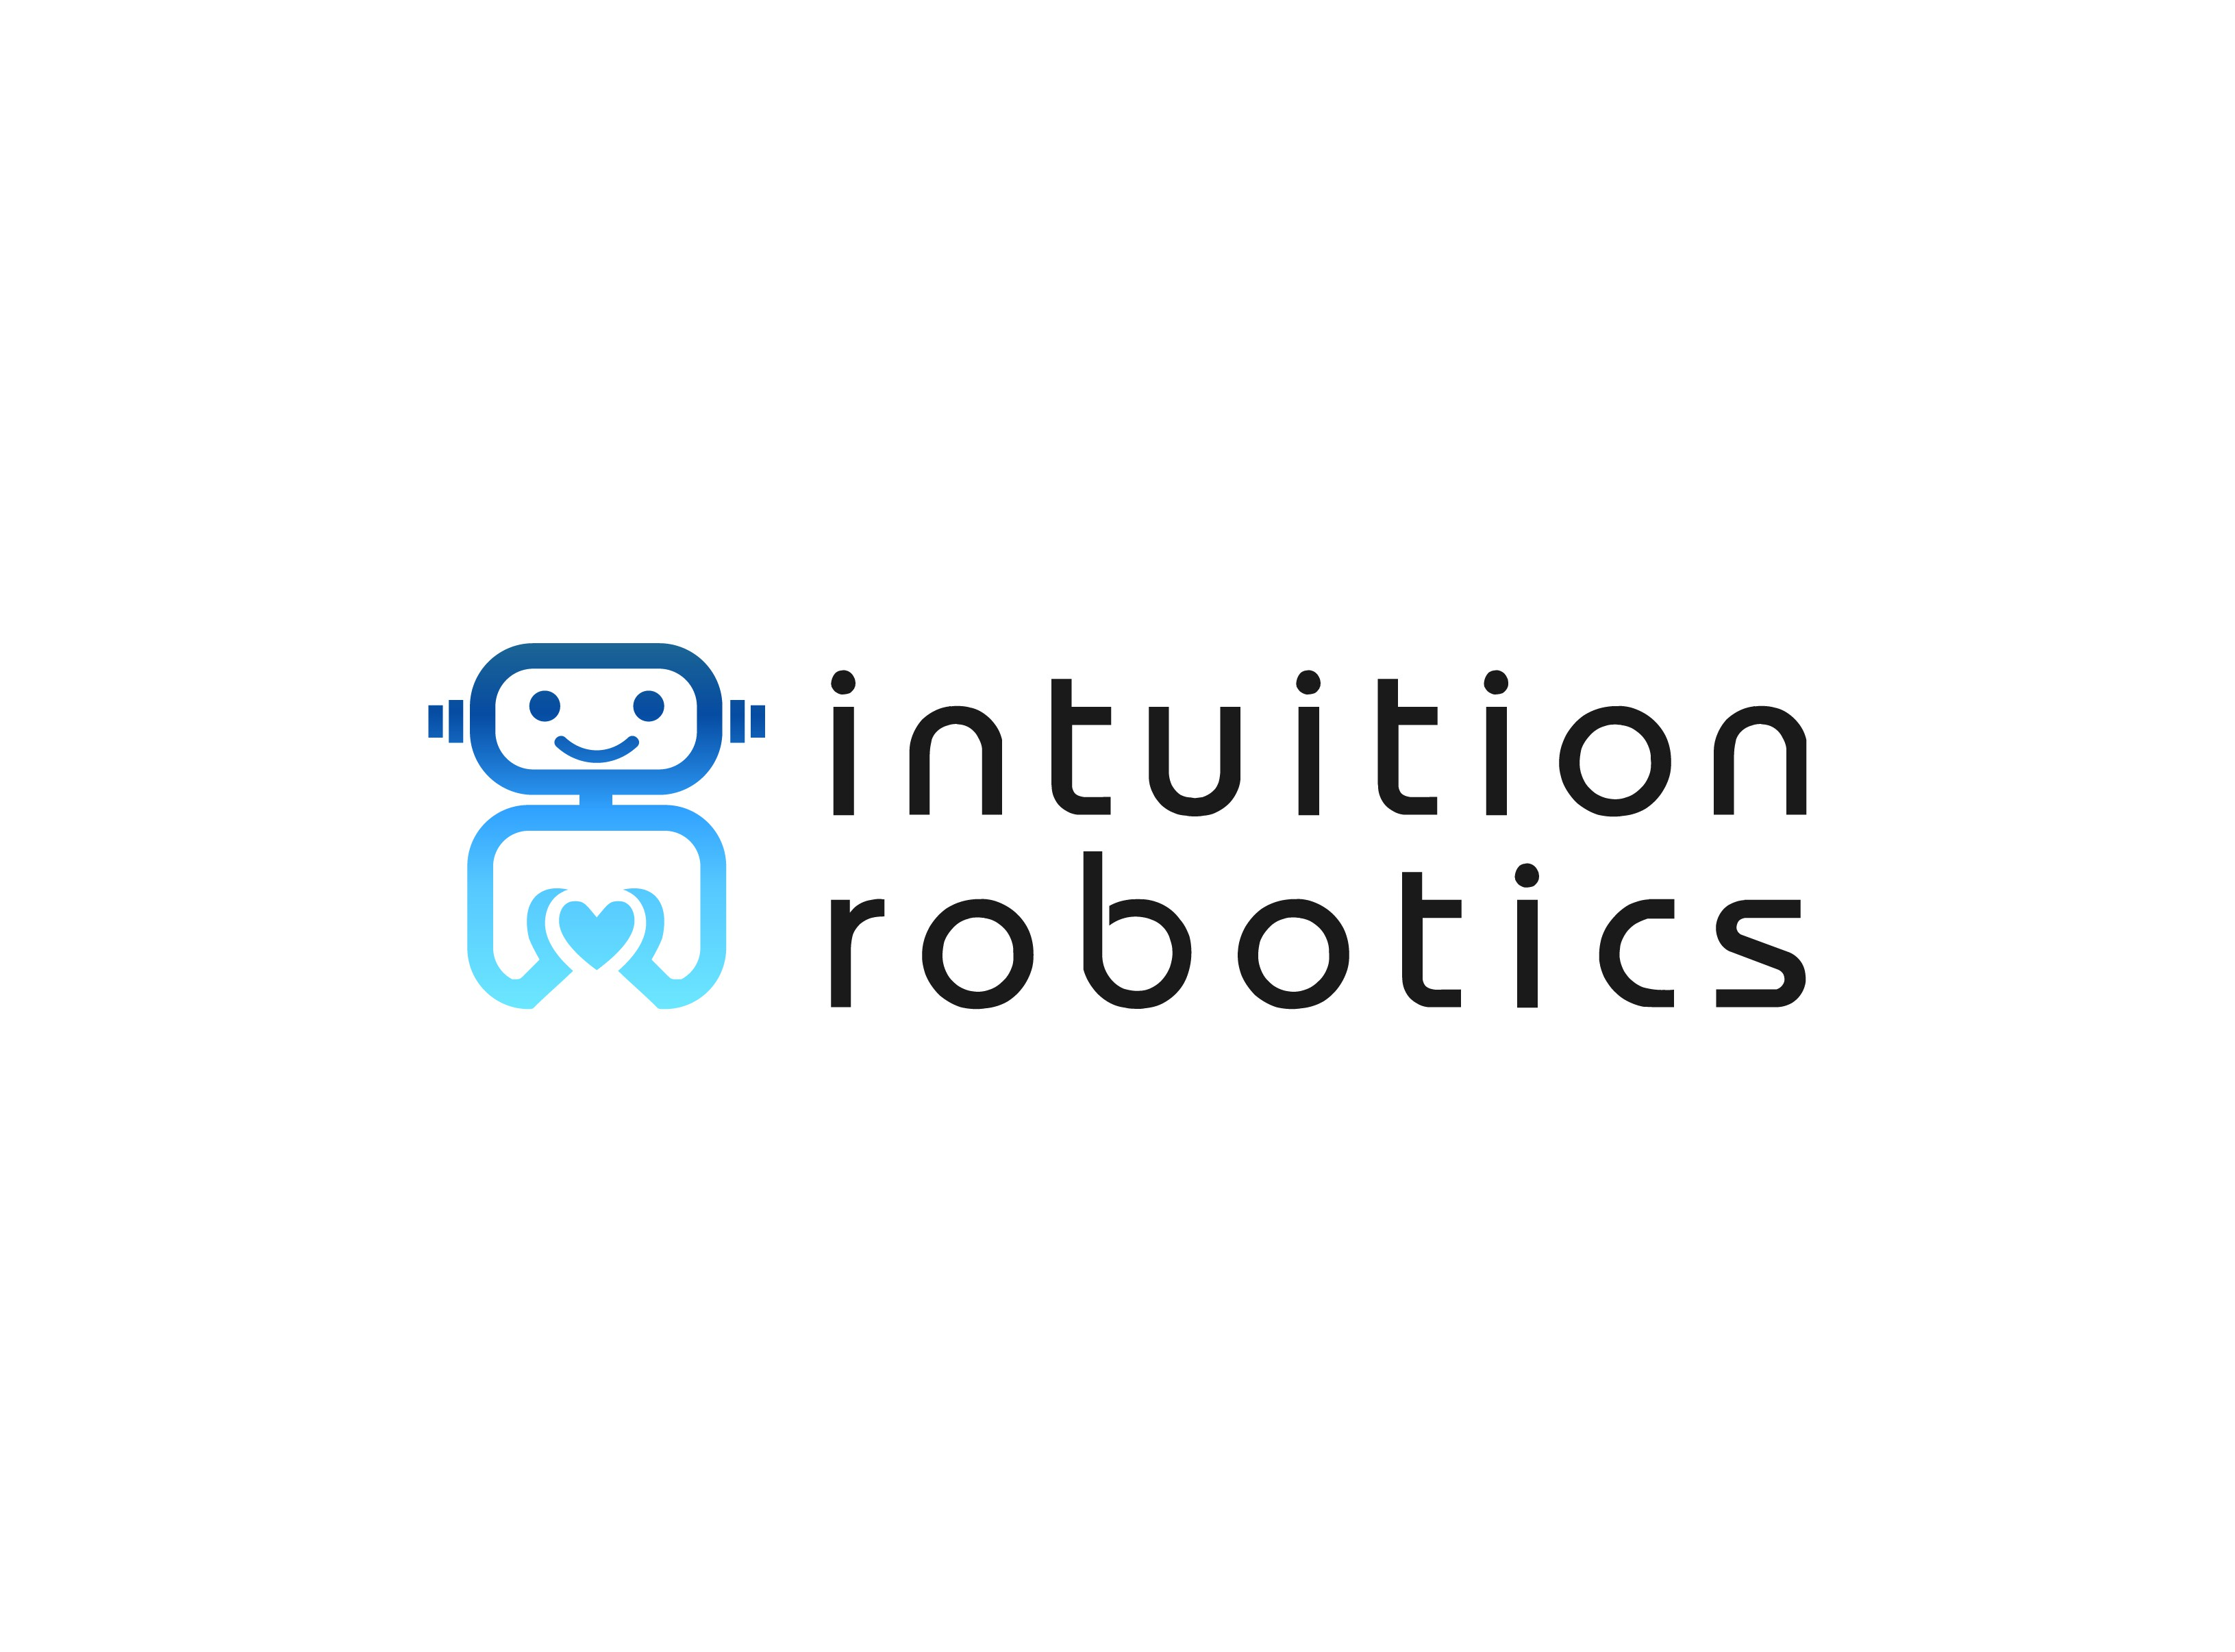 Logo for social robotics company that will help millions of people